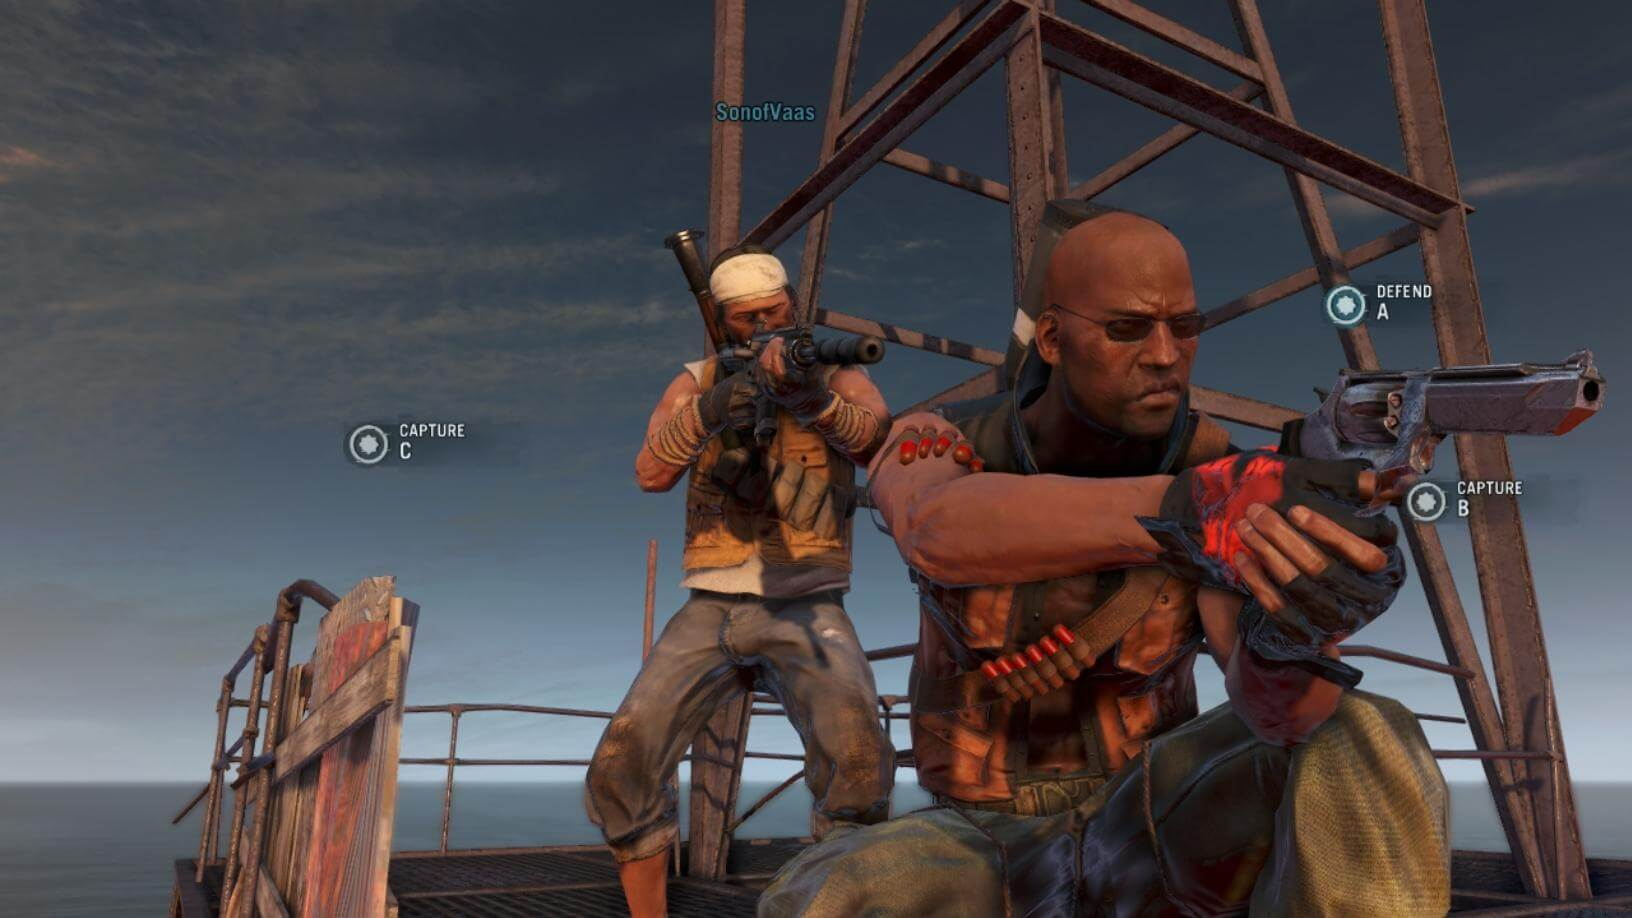 'Far Cry 3' Expands Via 'Blood Dragon' Downloadable & New Patch